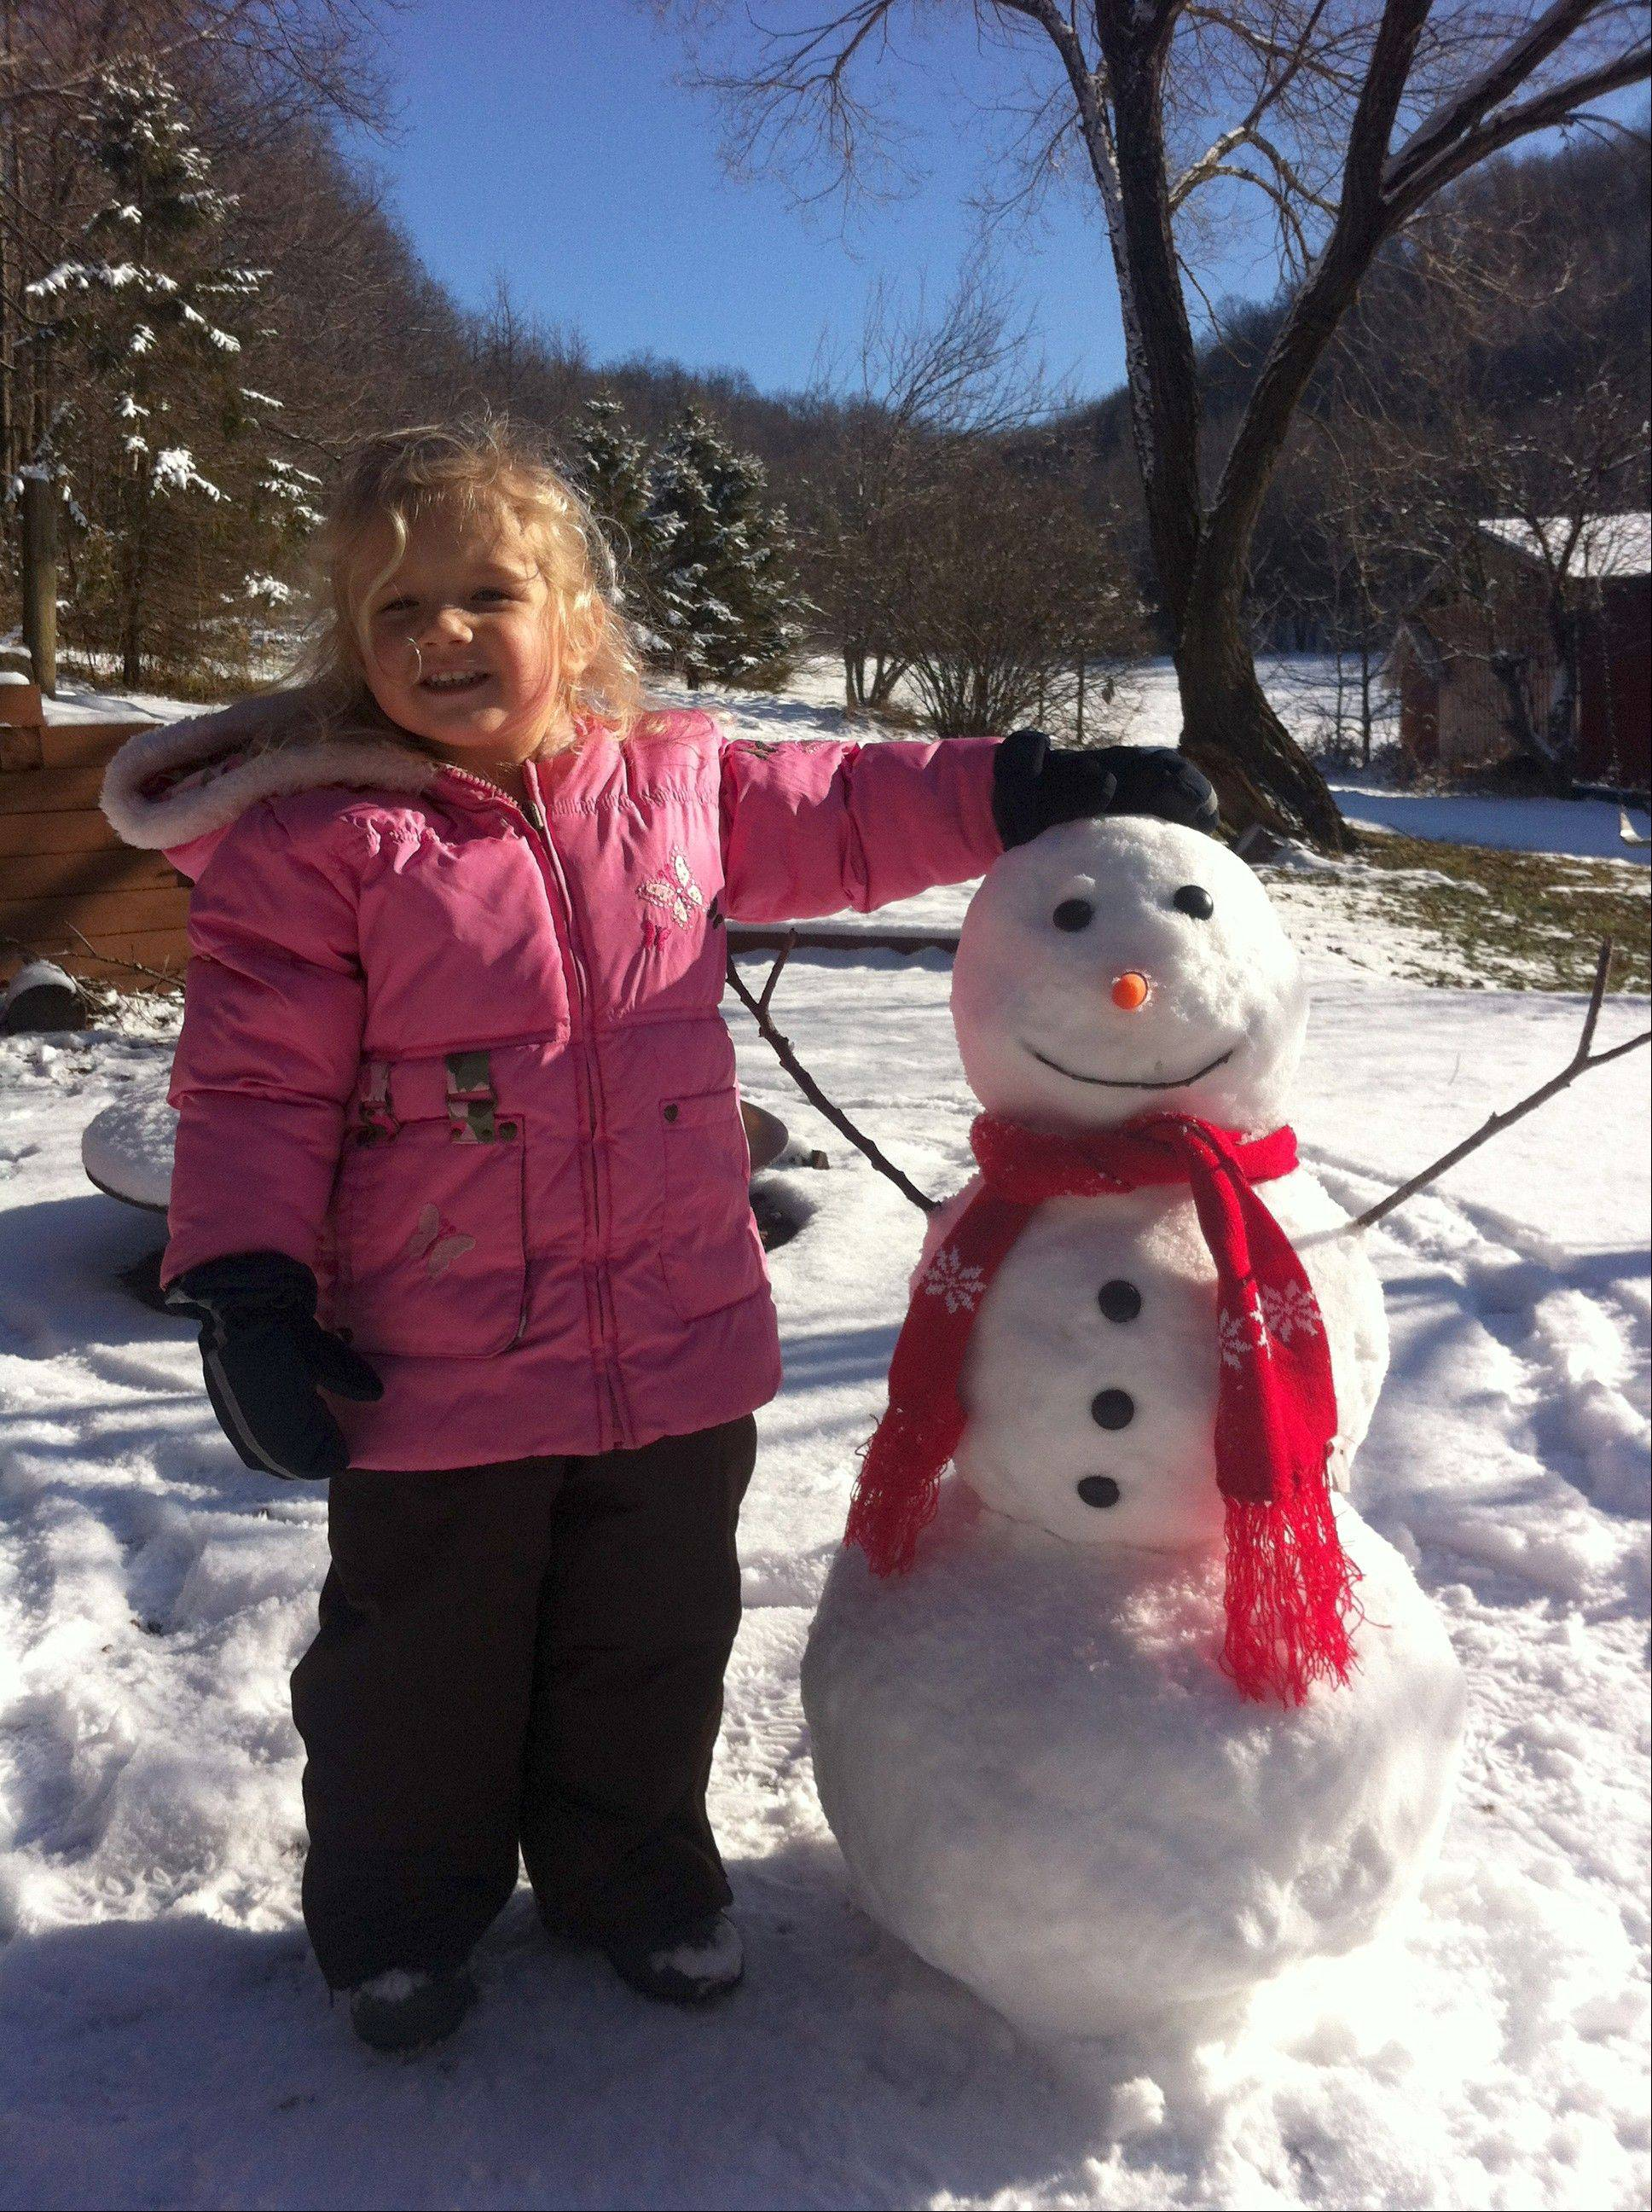 Whisked away from the hustle of busy lives, families staying at Candlewood Cabins in southwest Wisconsin can take time for simple pleasures like building snowmen.